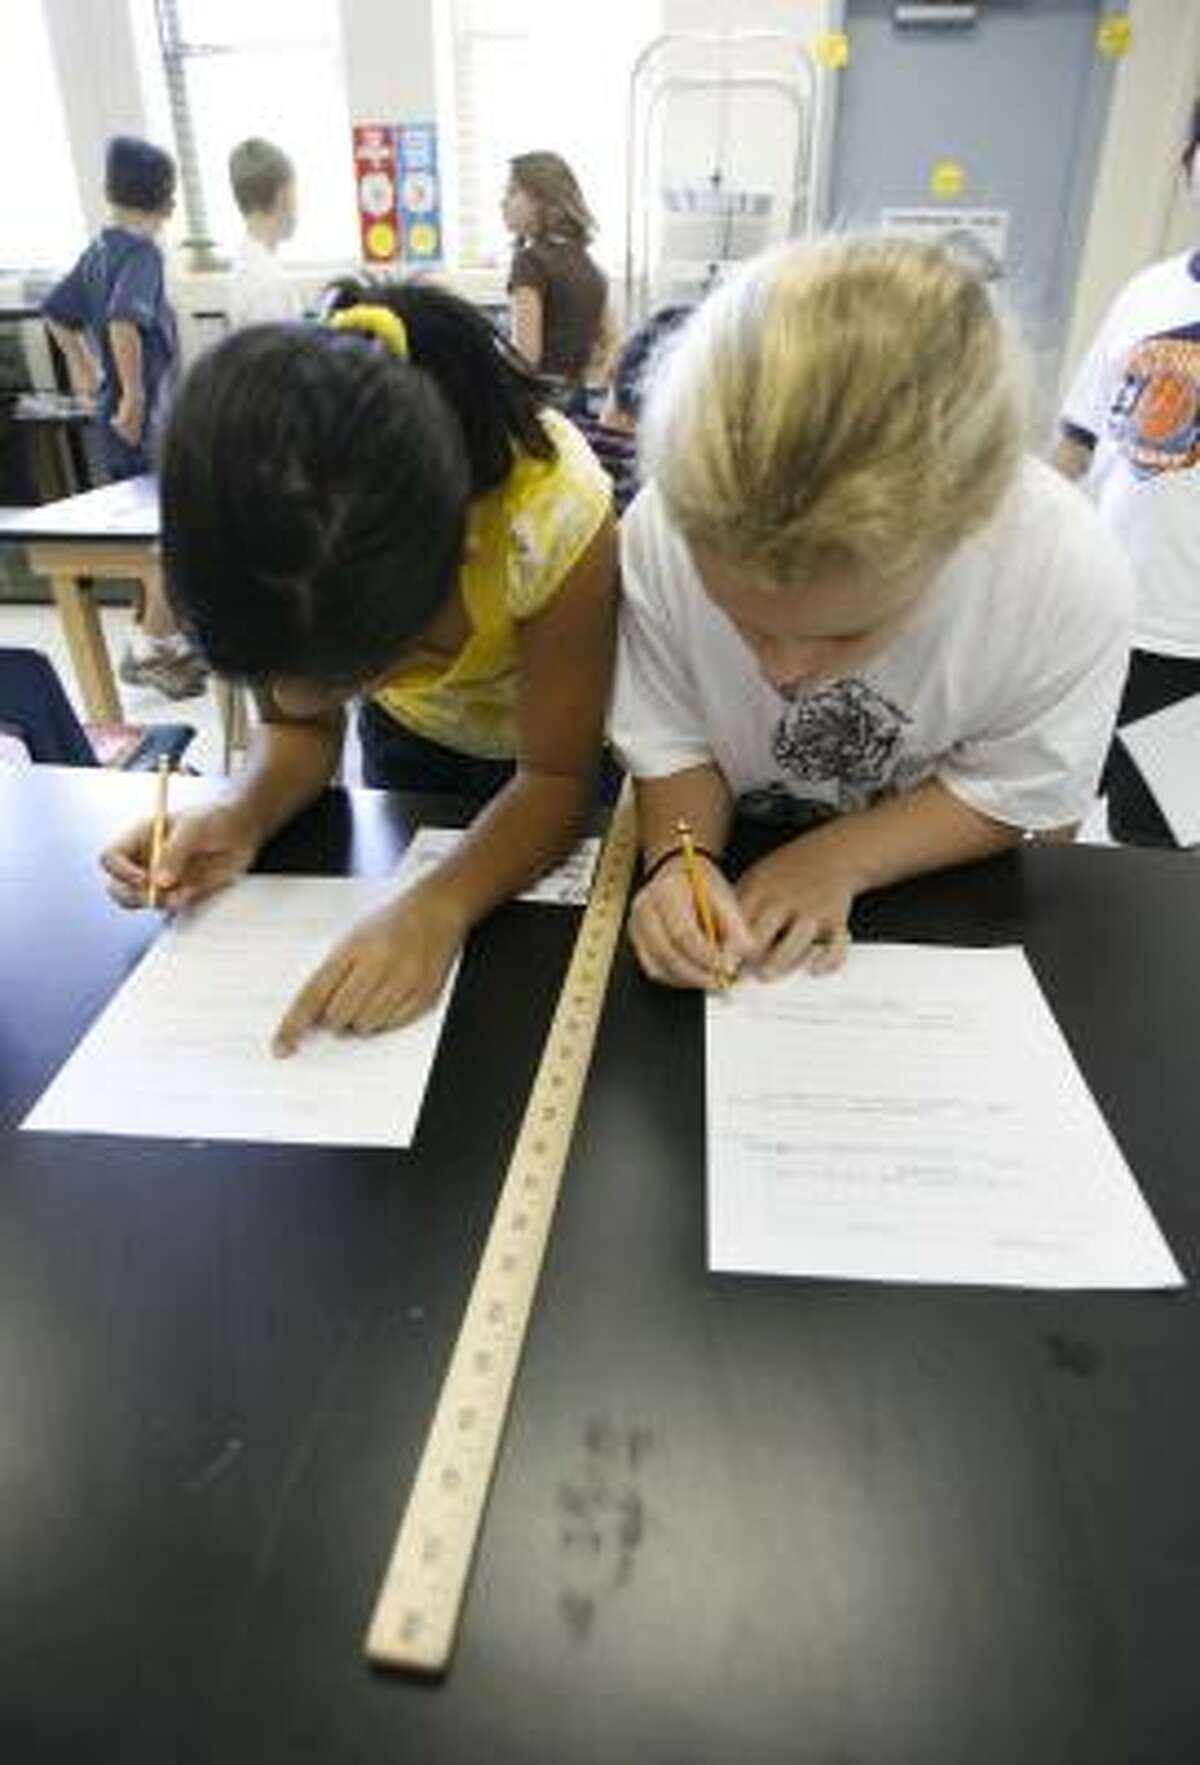 Fifth-graders Annum Sadana, left, and Julianna Pierce write down what they observed in science class at Roberts Elementary.